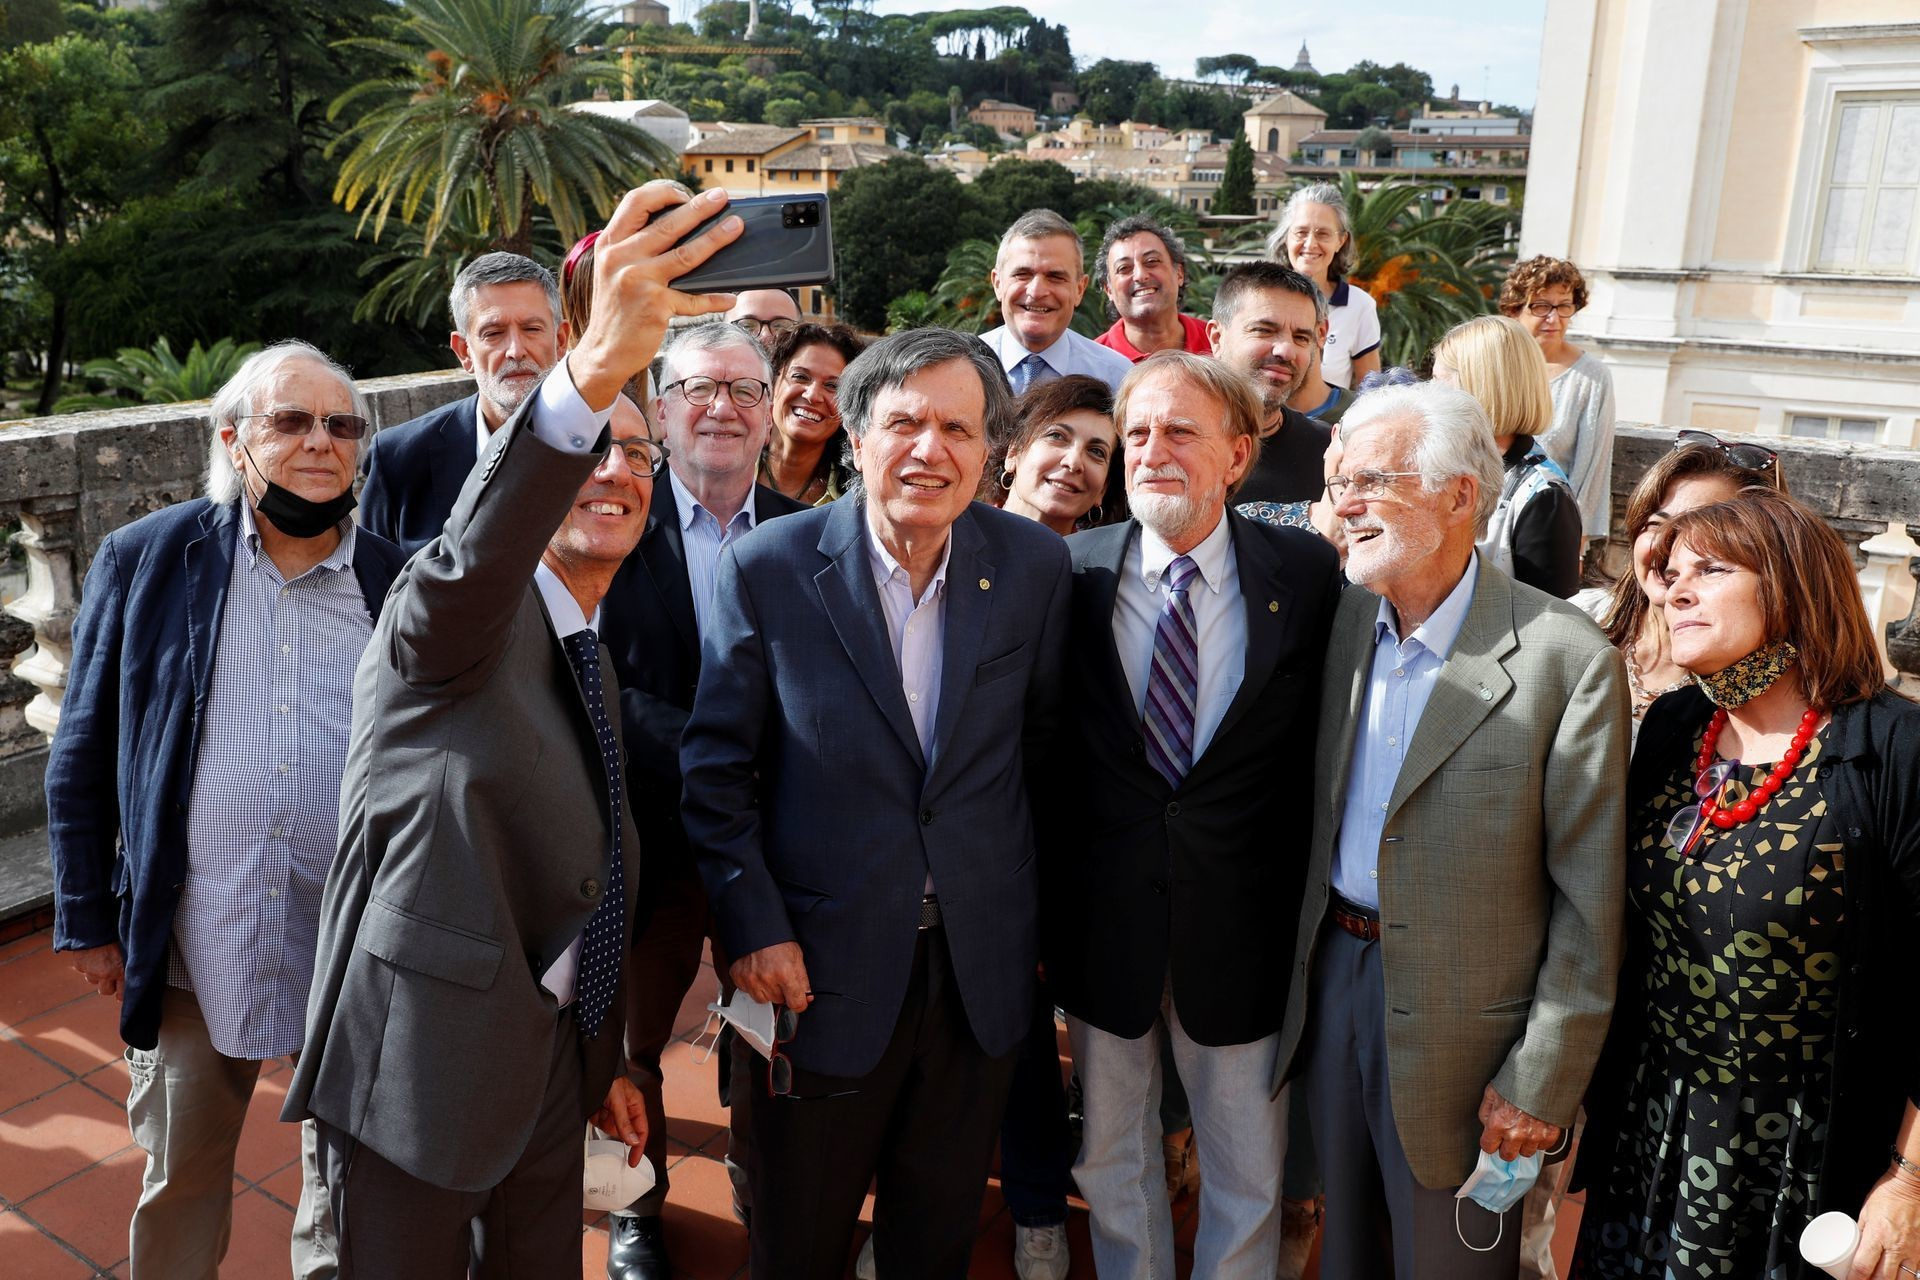 Joint winner of the Nobel Prize for Physics, Italian scientist Giorgio Parisi takes a selfie with his colleagues after the announcement in Rome, Italy, October 5, 2021.